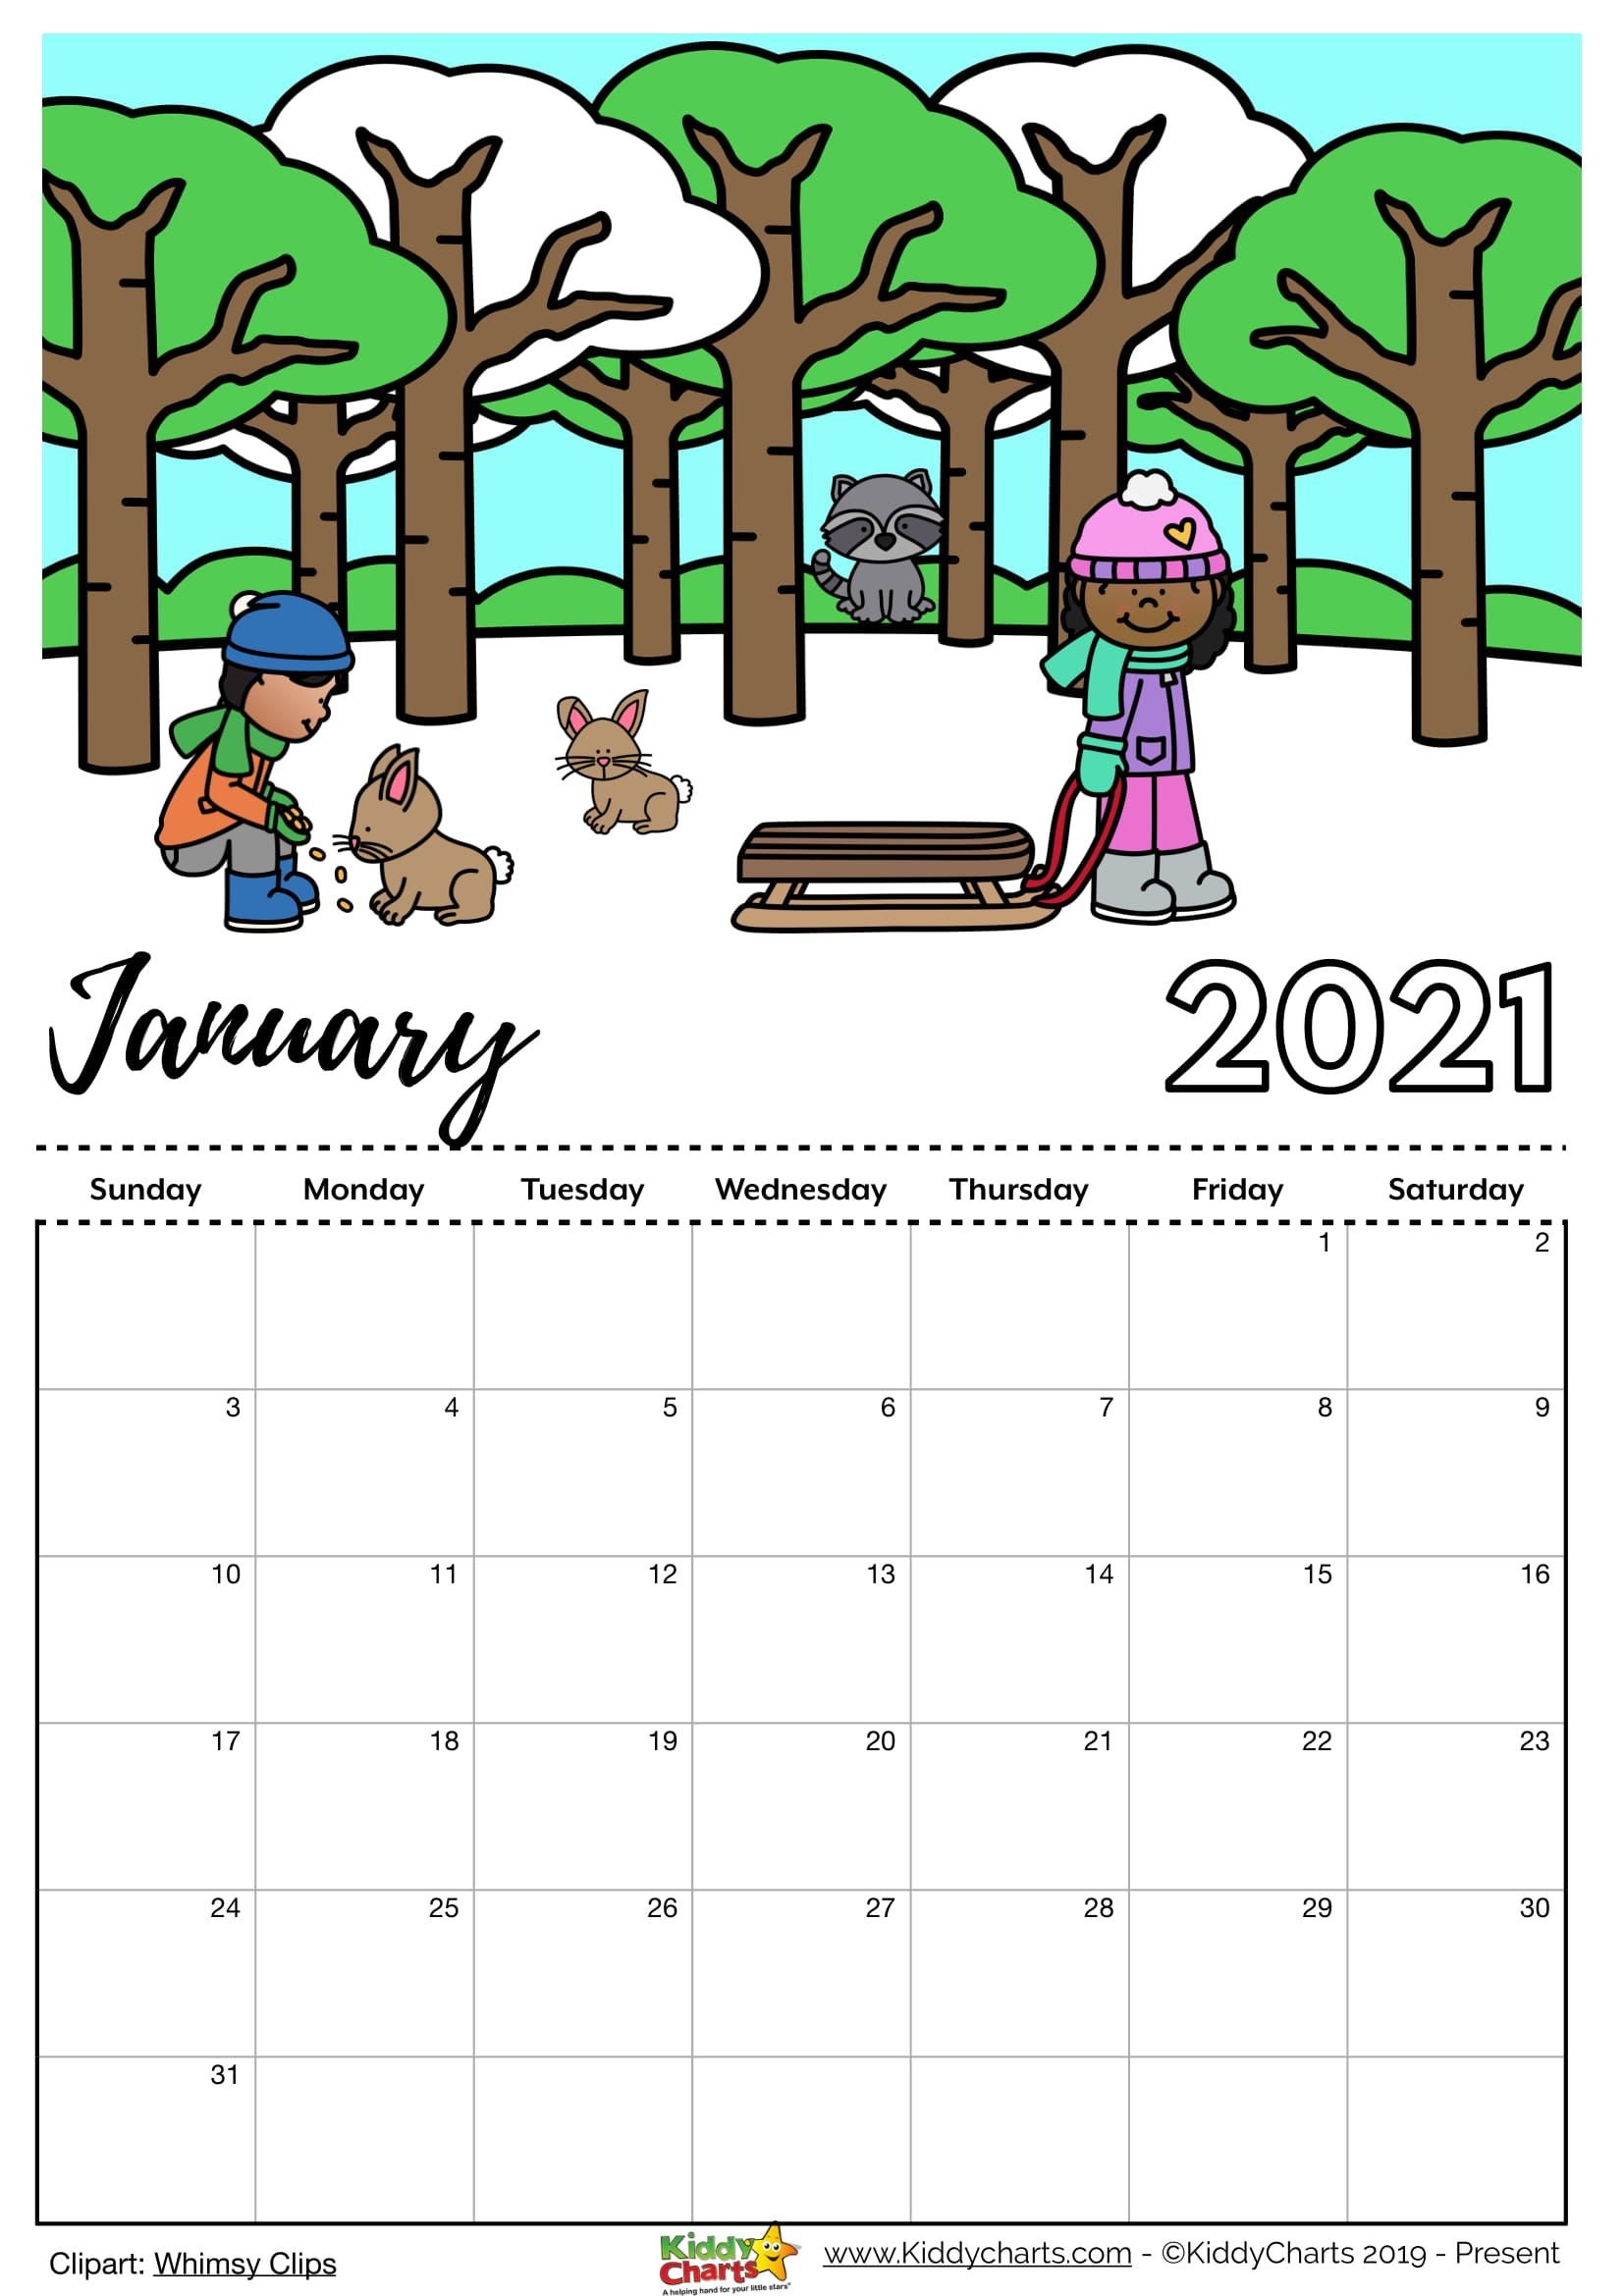 Check our new free printable 2021 calendar! in 2020 | 2021 ...